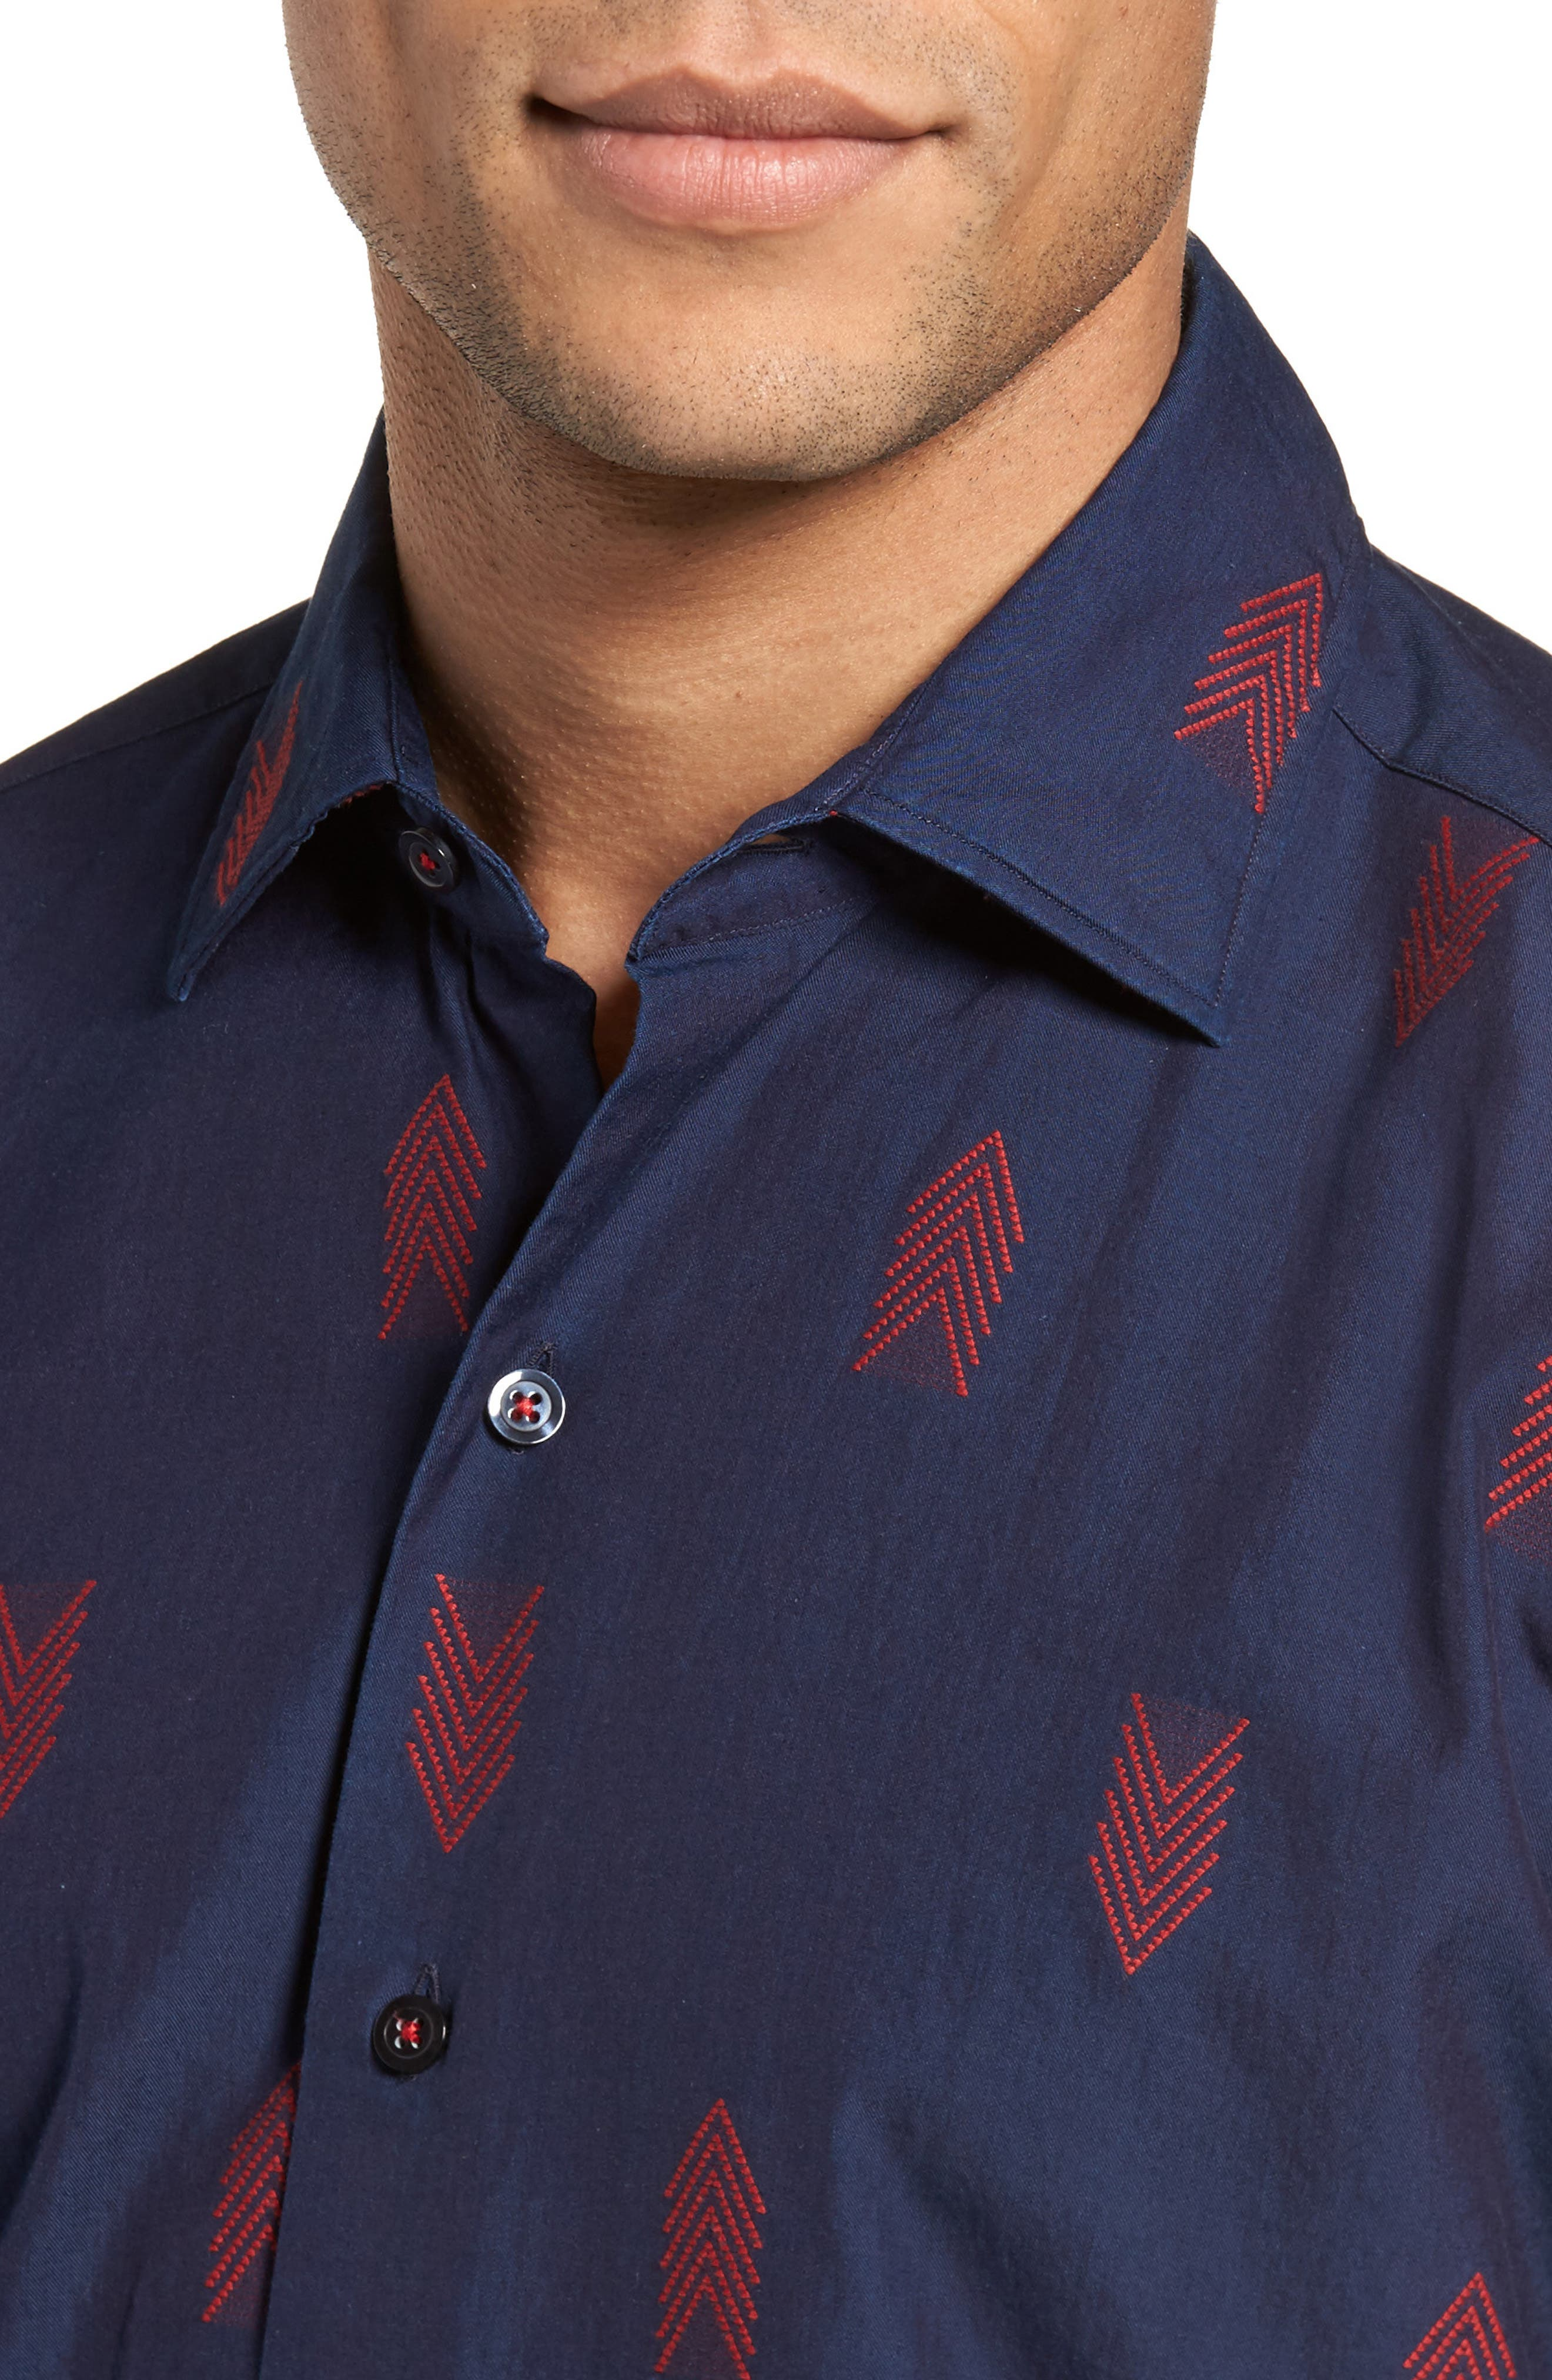 Slim Fit Embroidered Sport Shirt,                             Alternate thumbnail 4, color,                             400